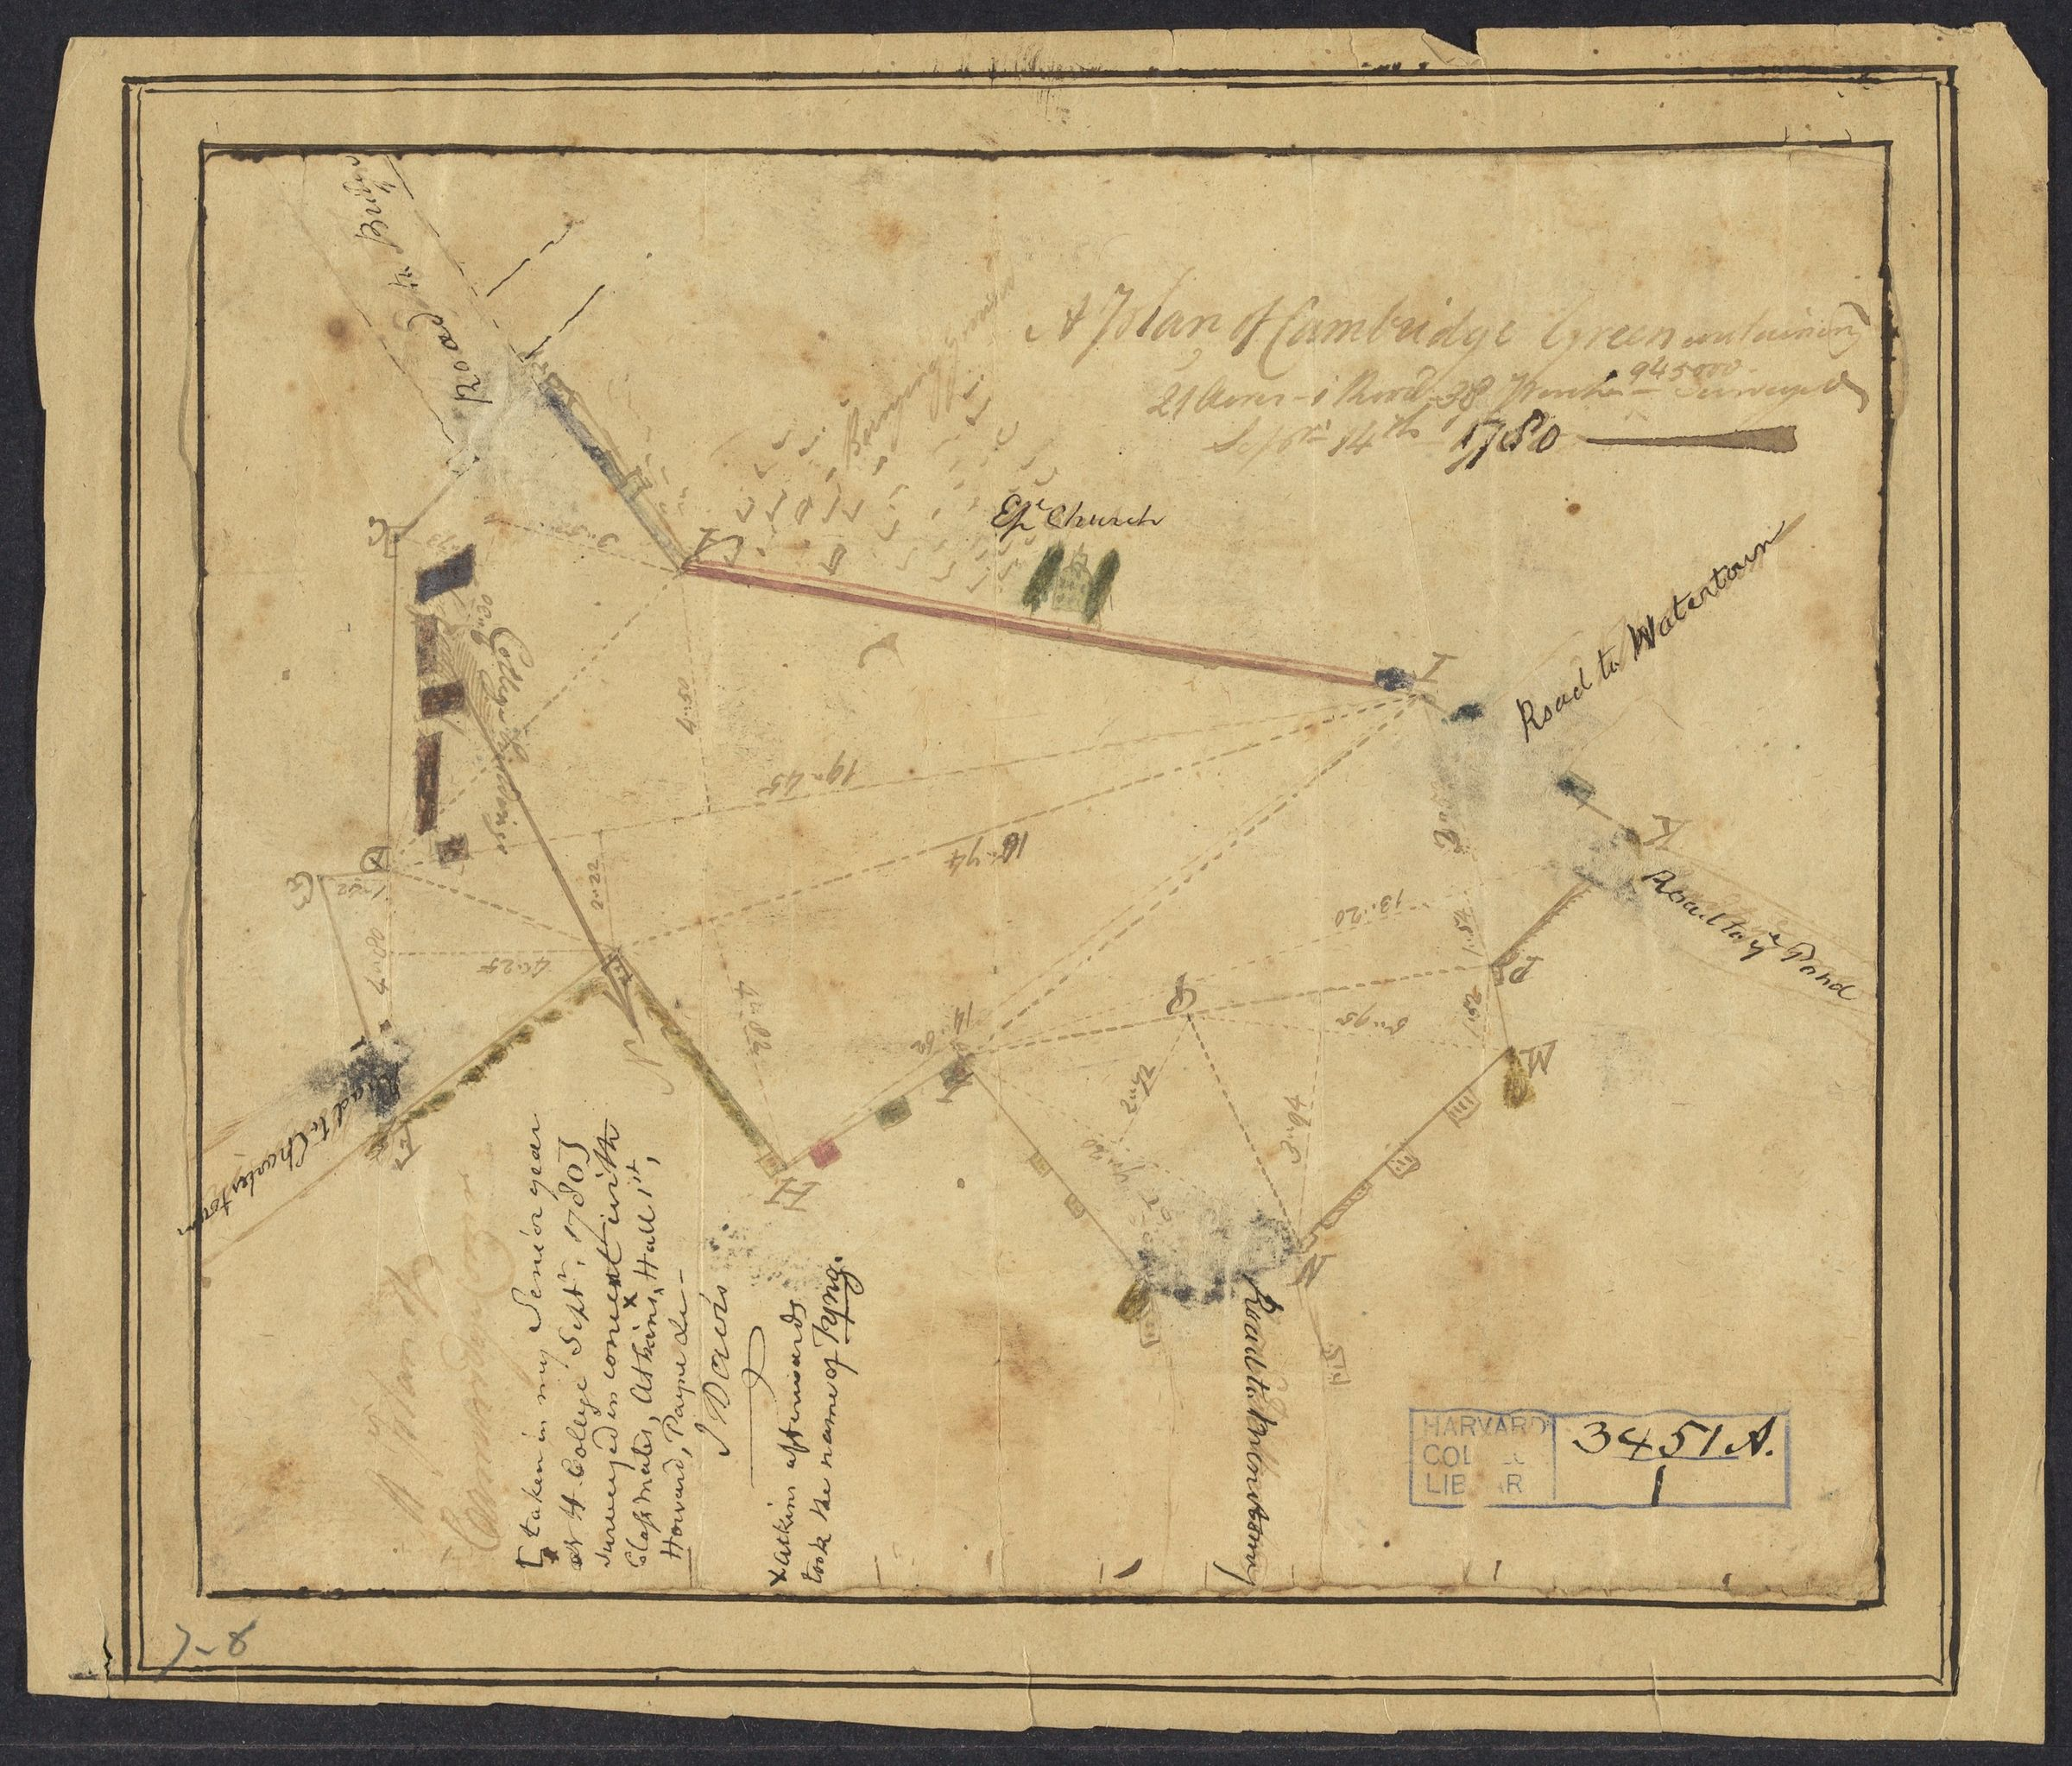 A  plan of Cambridge Green, 1780 September 14